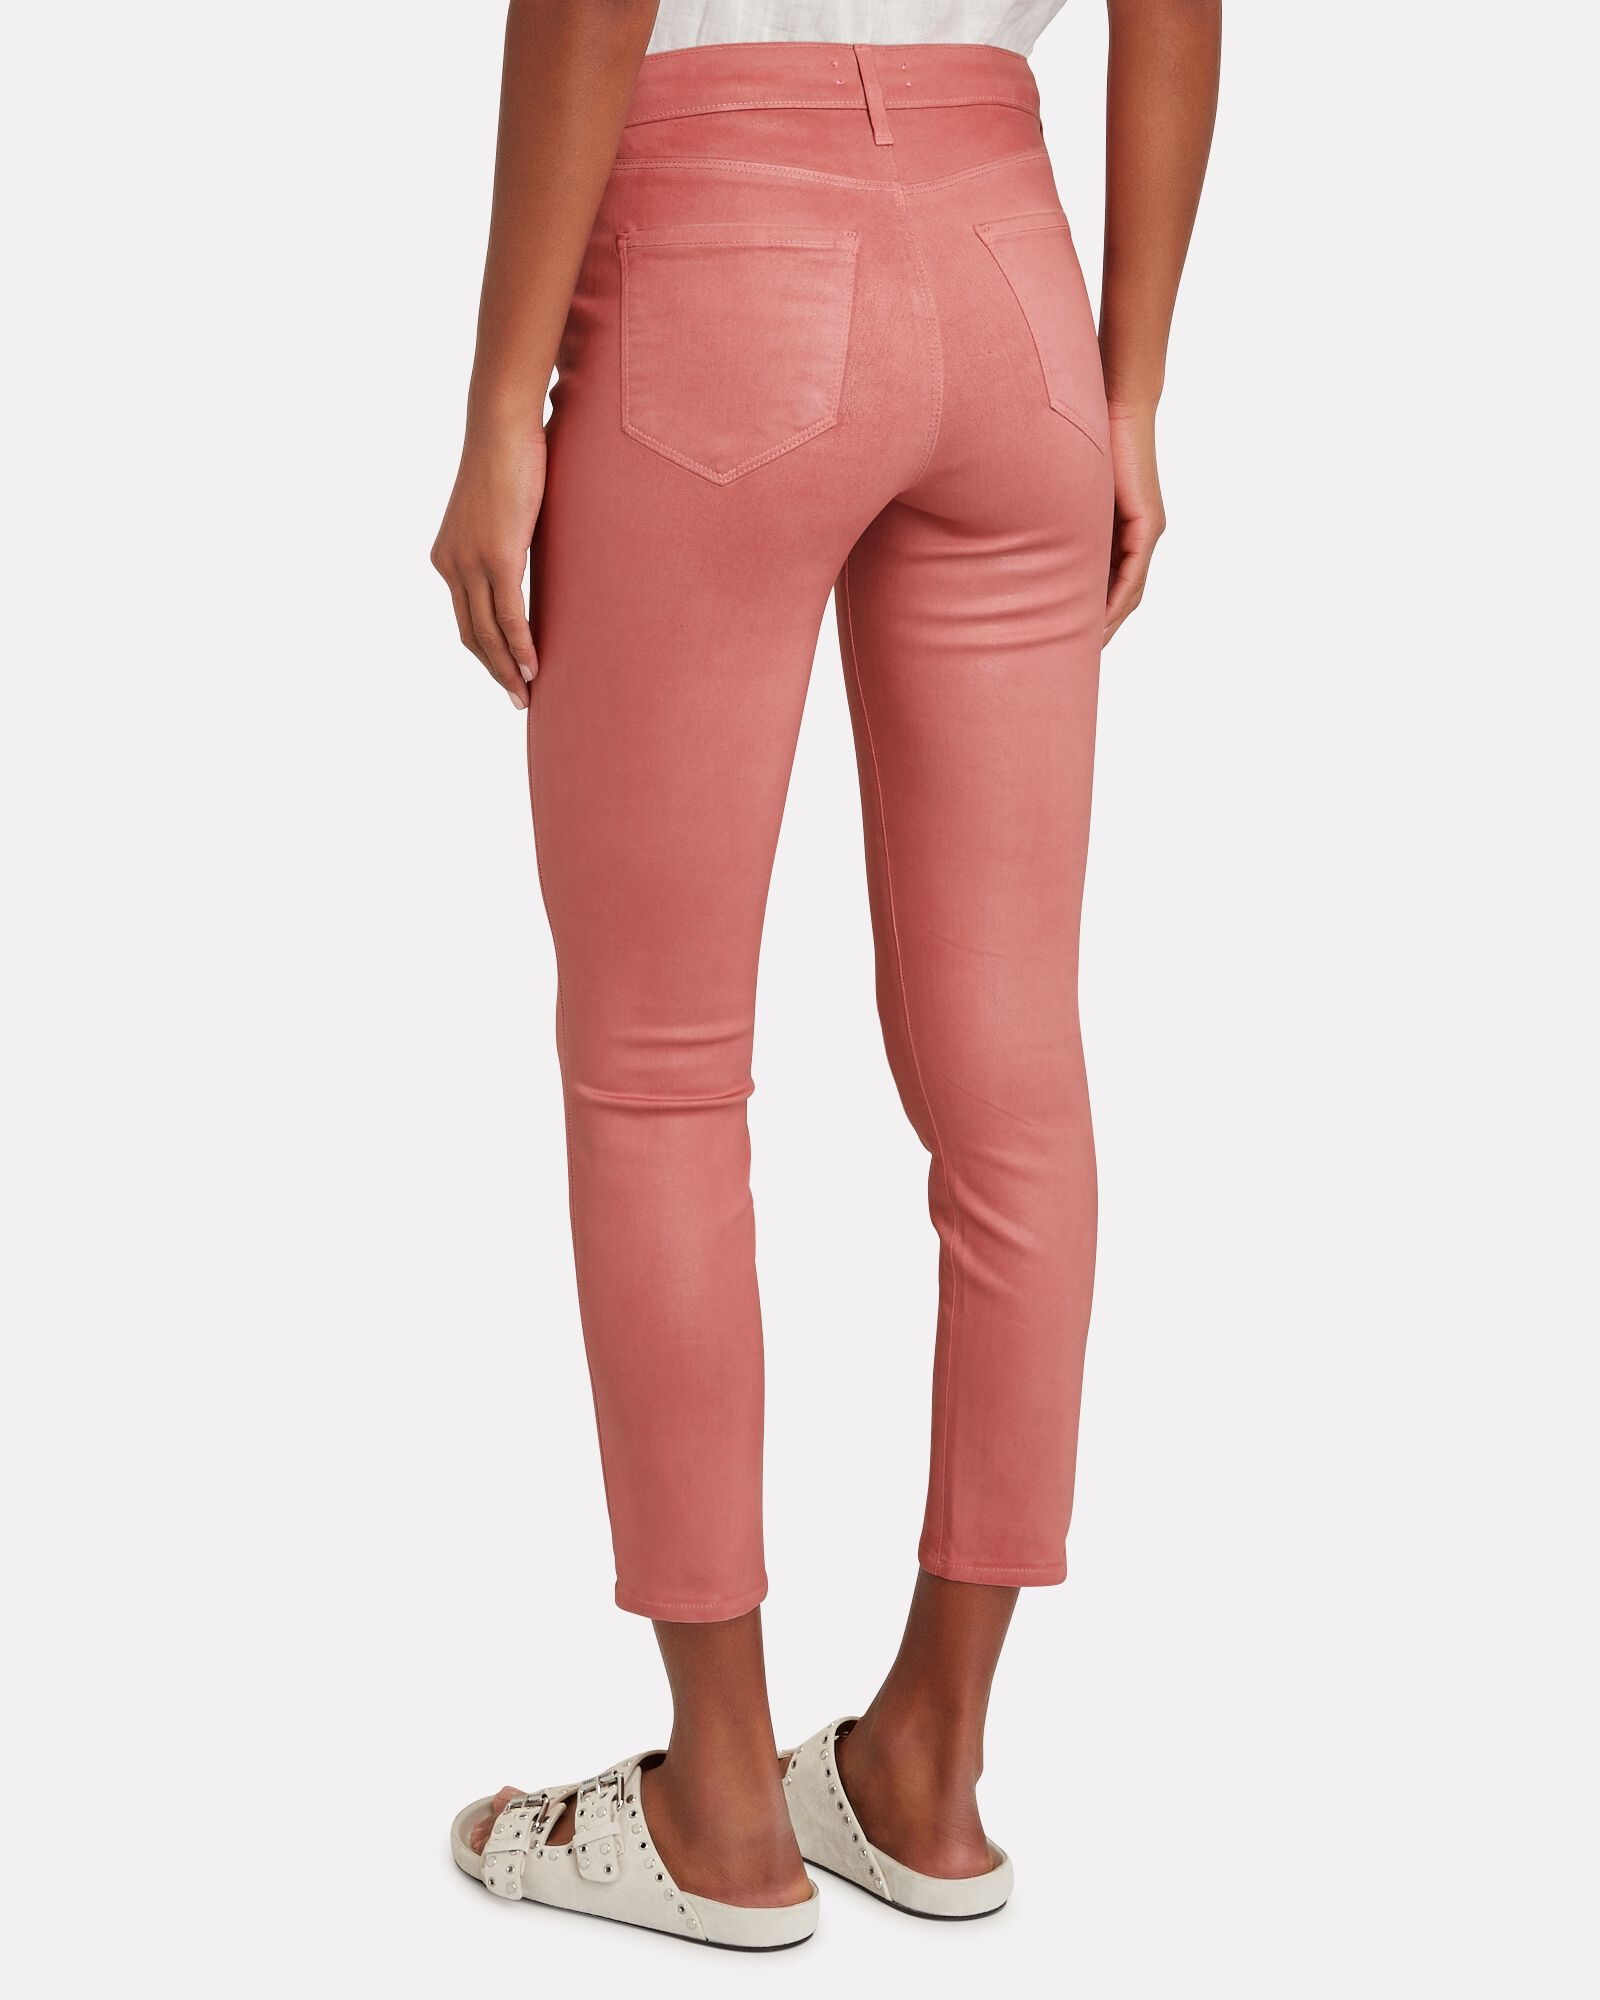 Margot Coated Skinny Jeans, DUSTY ROSE, hi-res